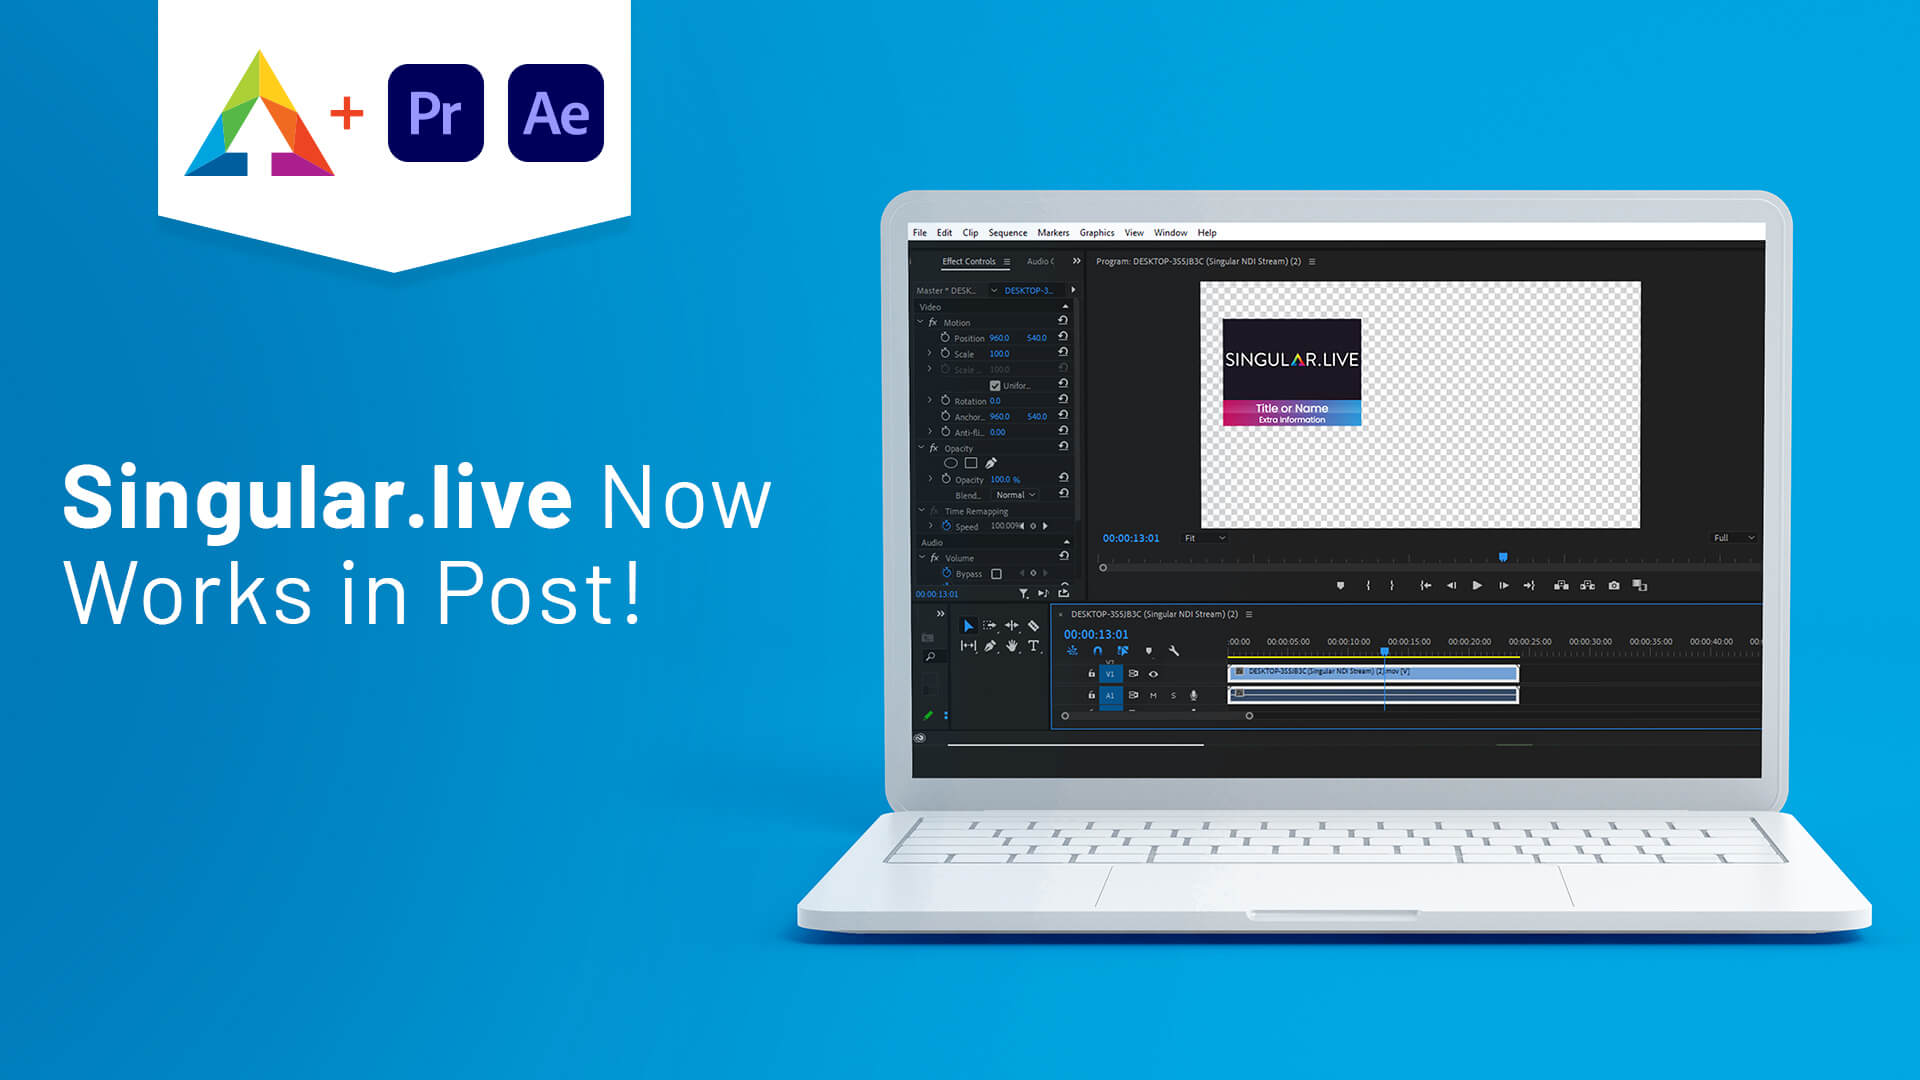 Singular.live Now Works in Post!